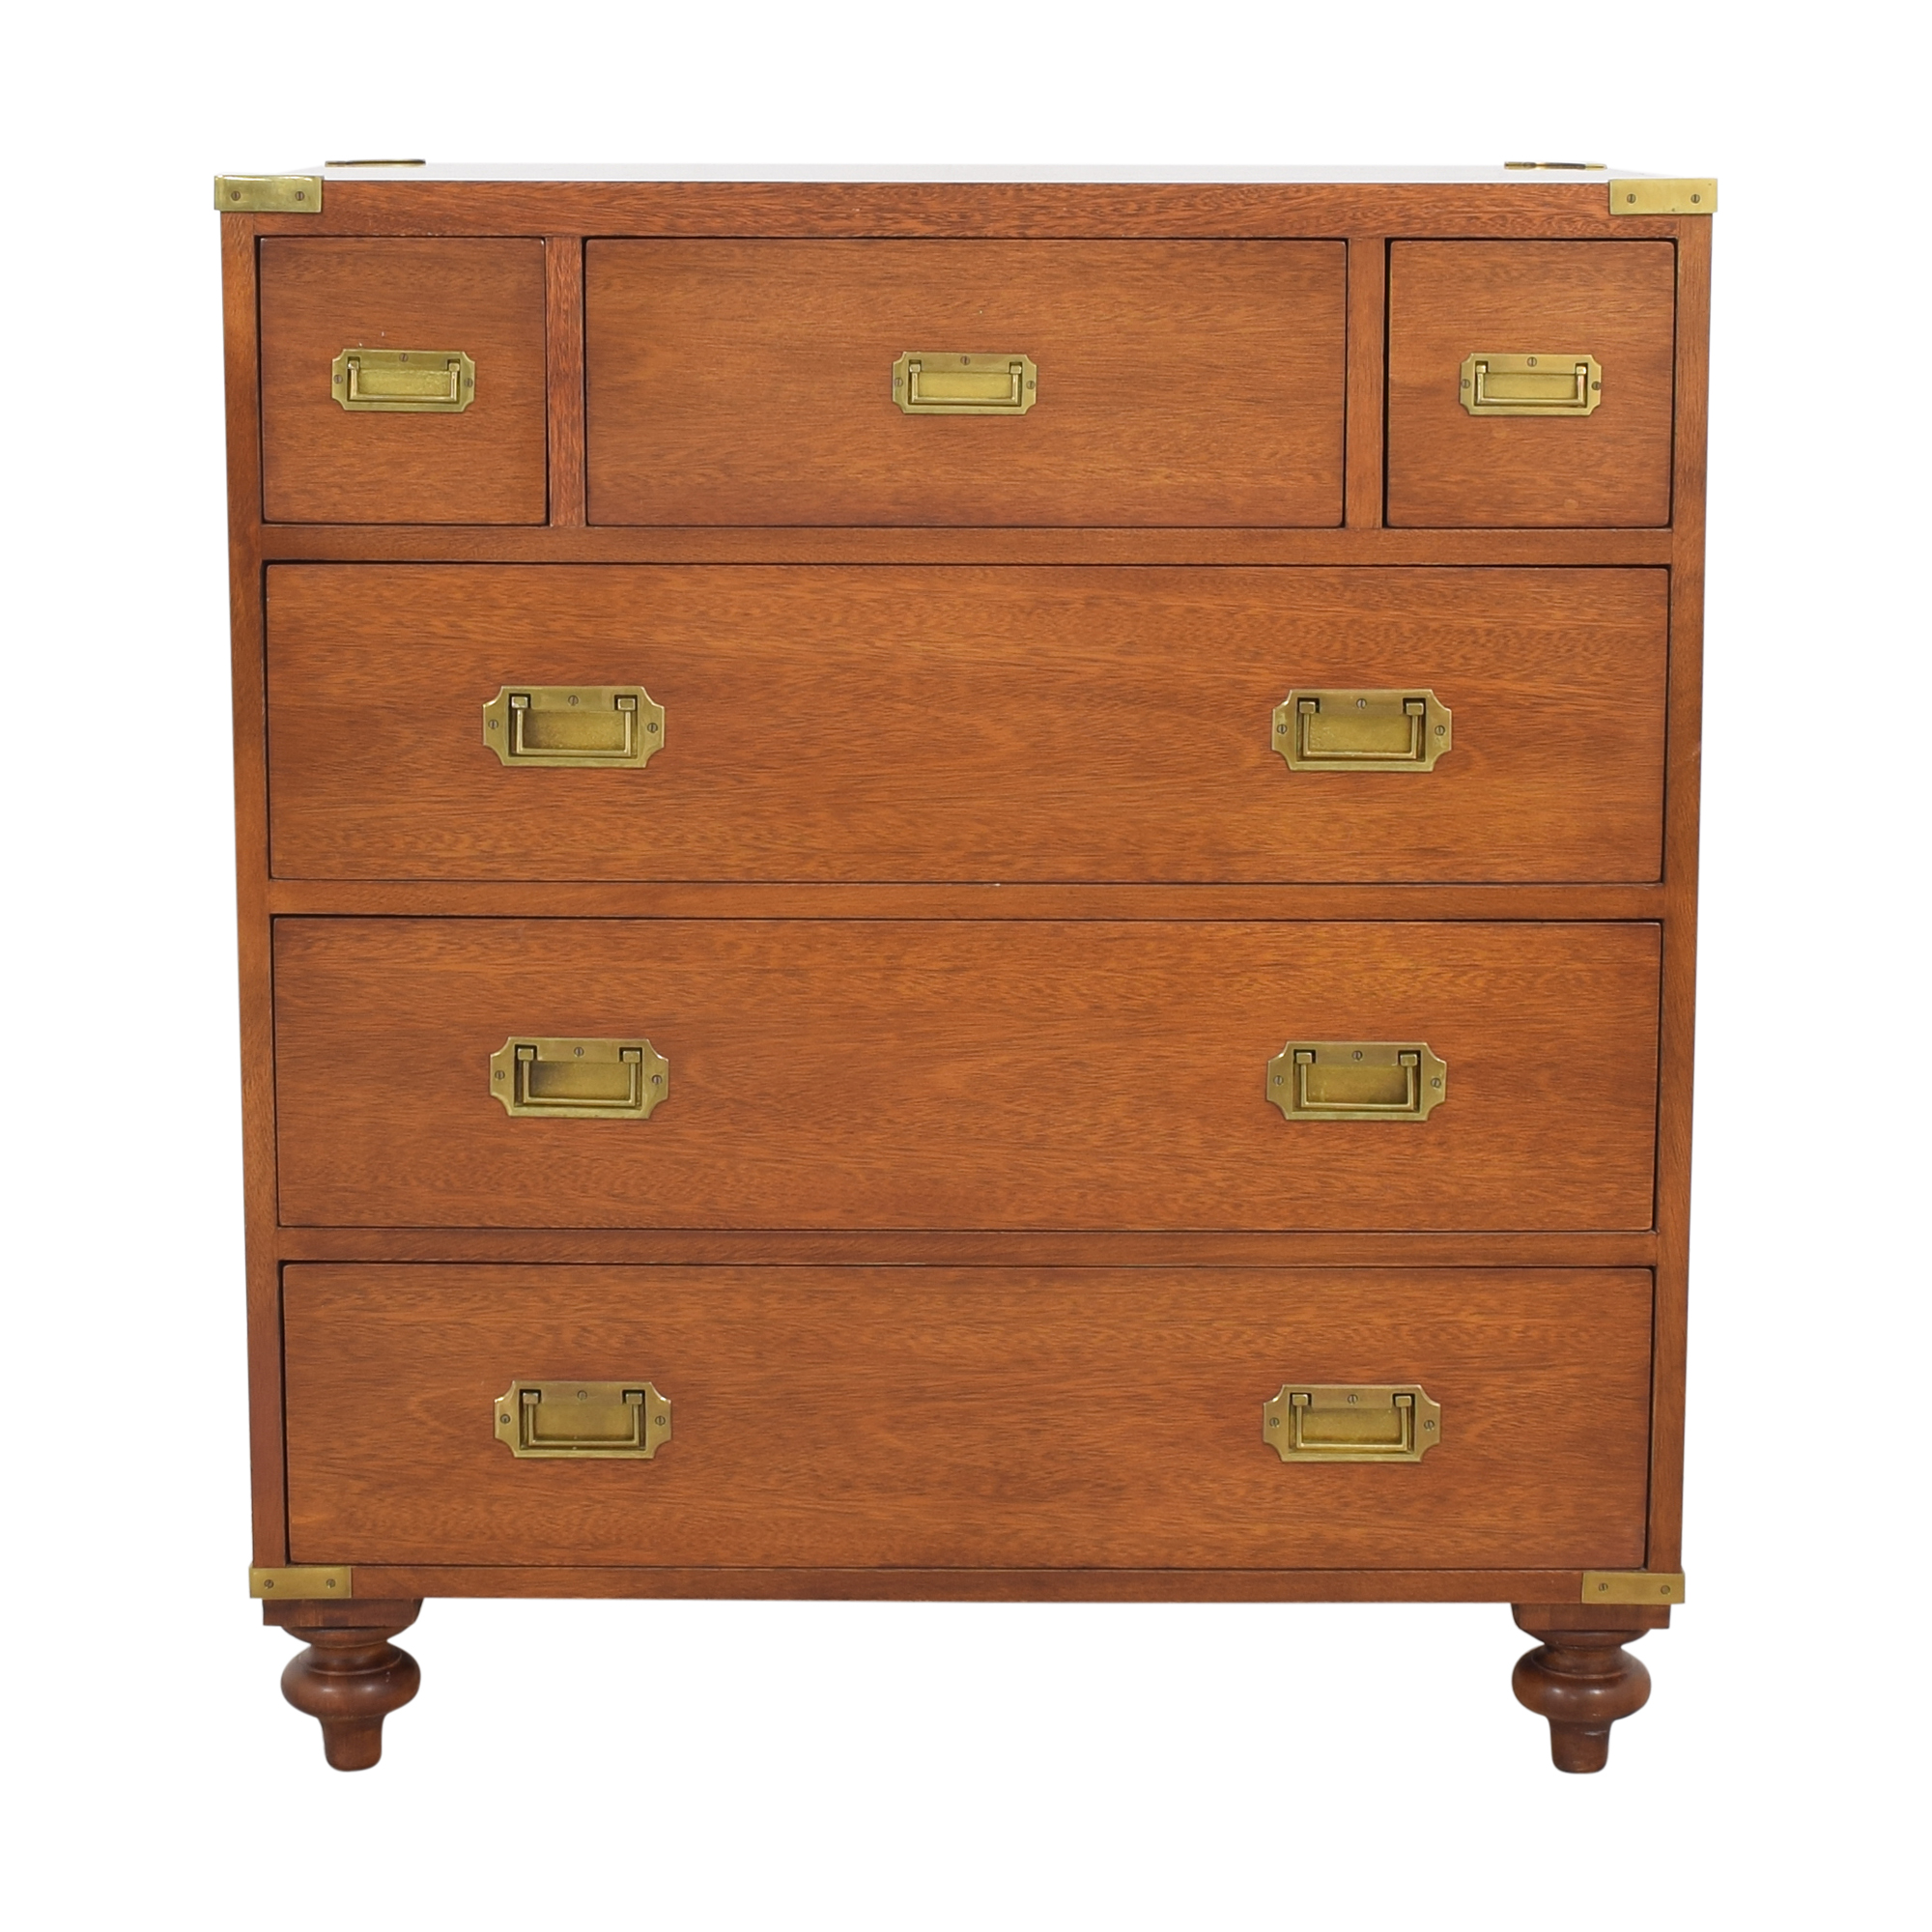 Ralph Lauren Home Ralph Lauren Home Campaign Chest second hand